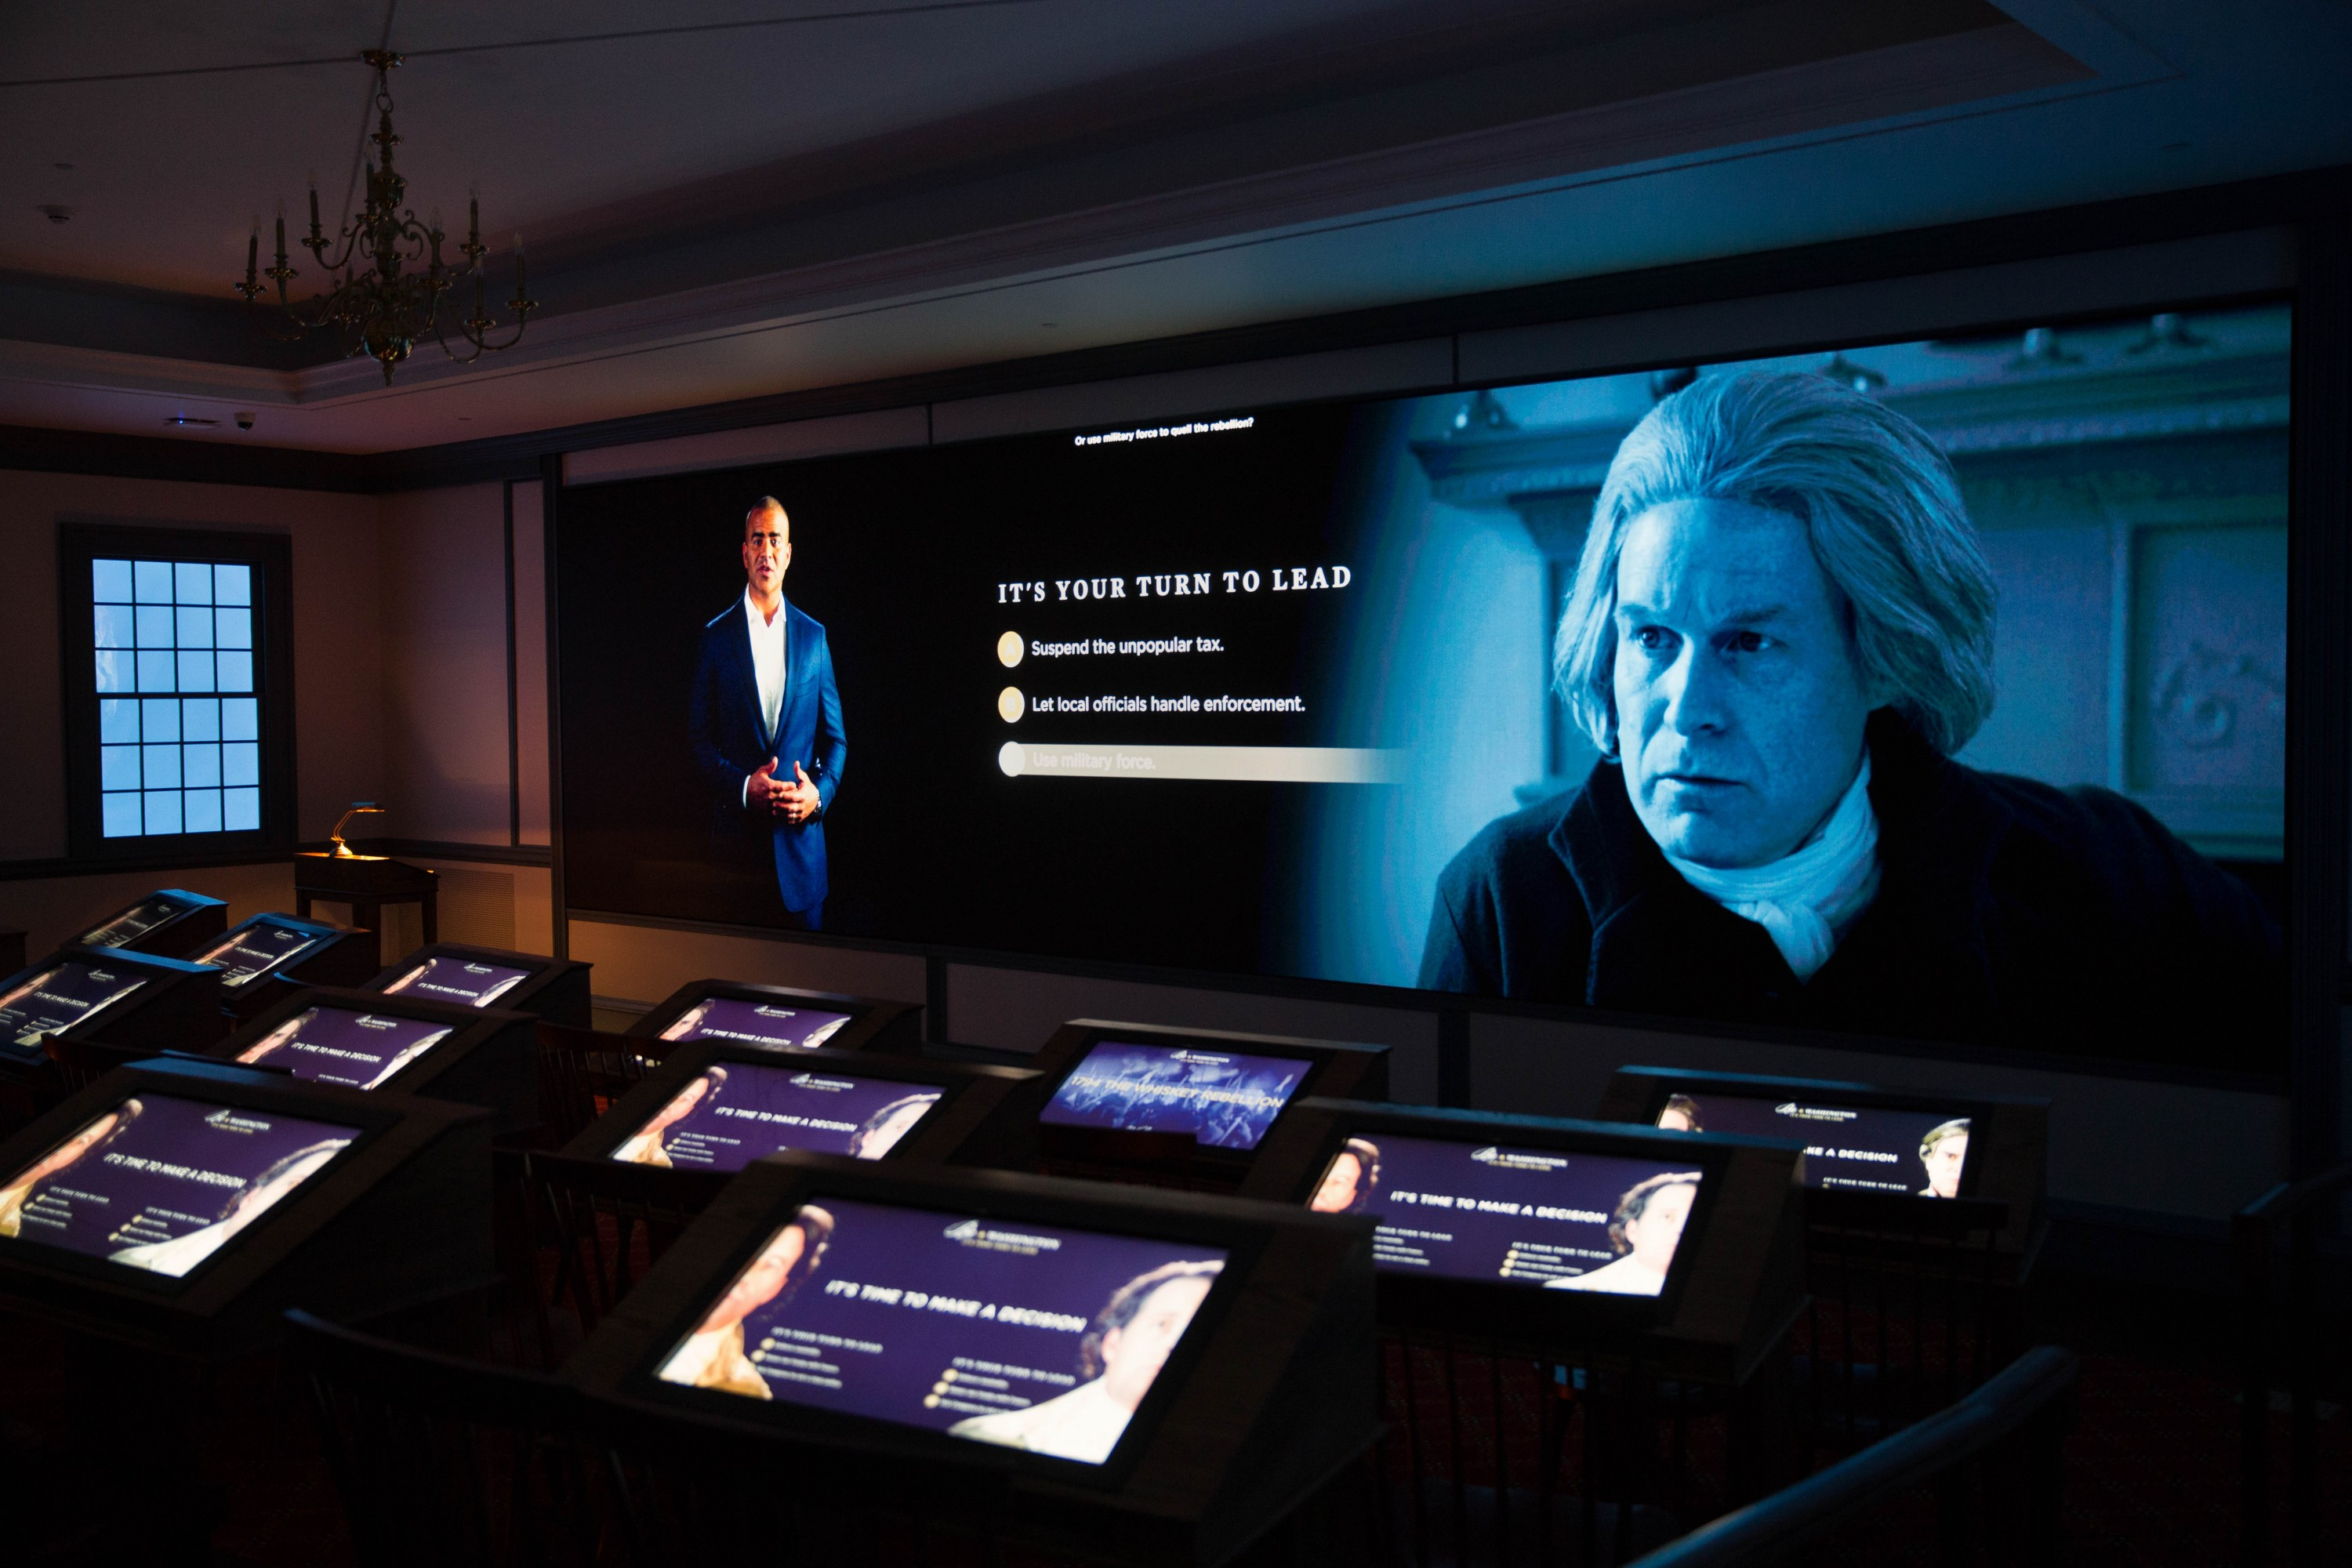 It's YOUR turn to lead in the new Be Washington interactive experience